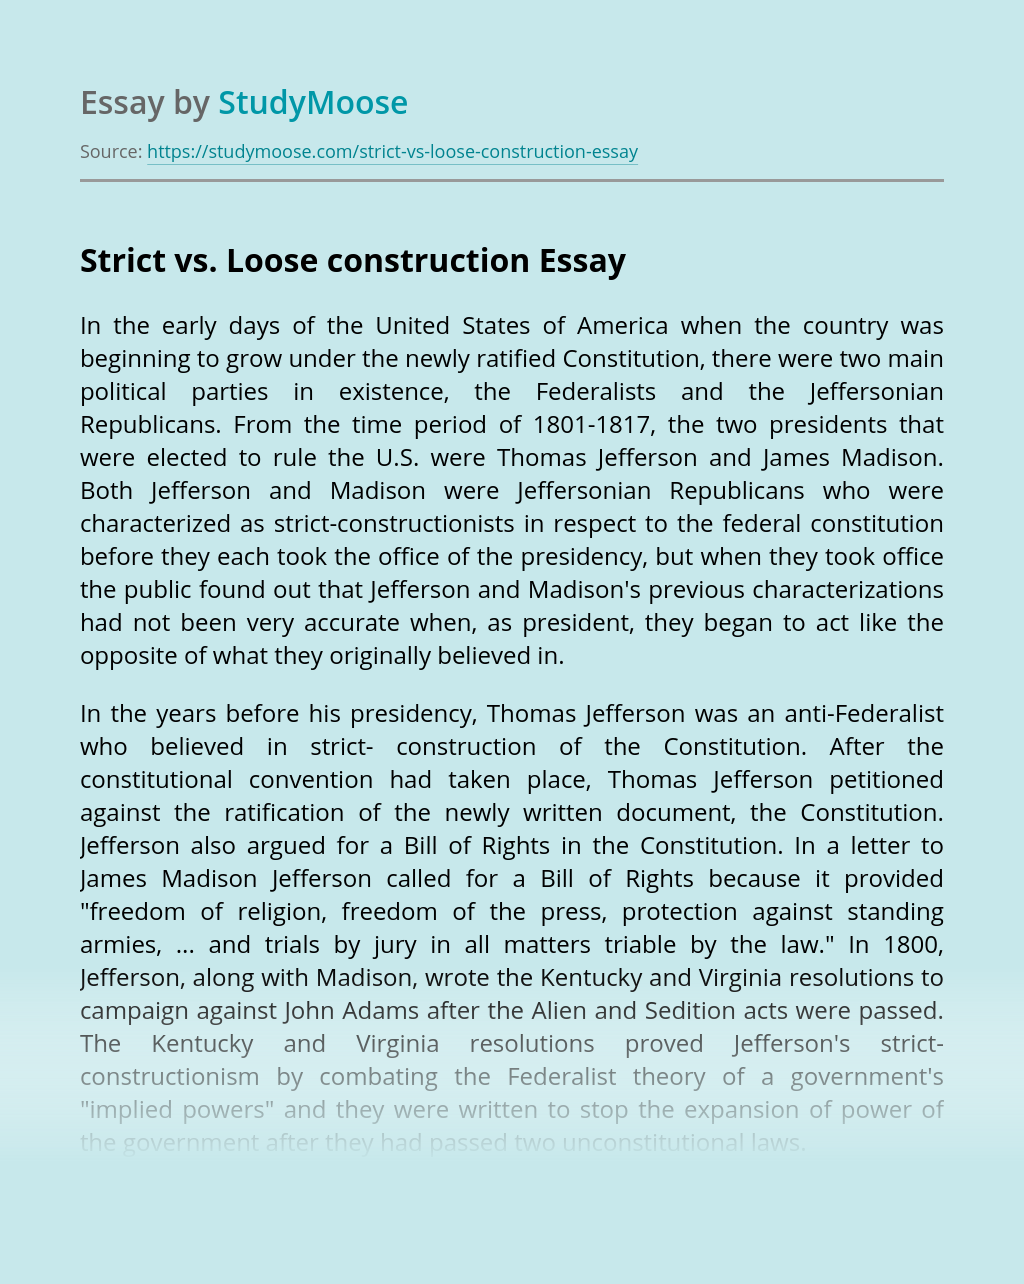 Strict vs. Loose construction